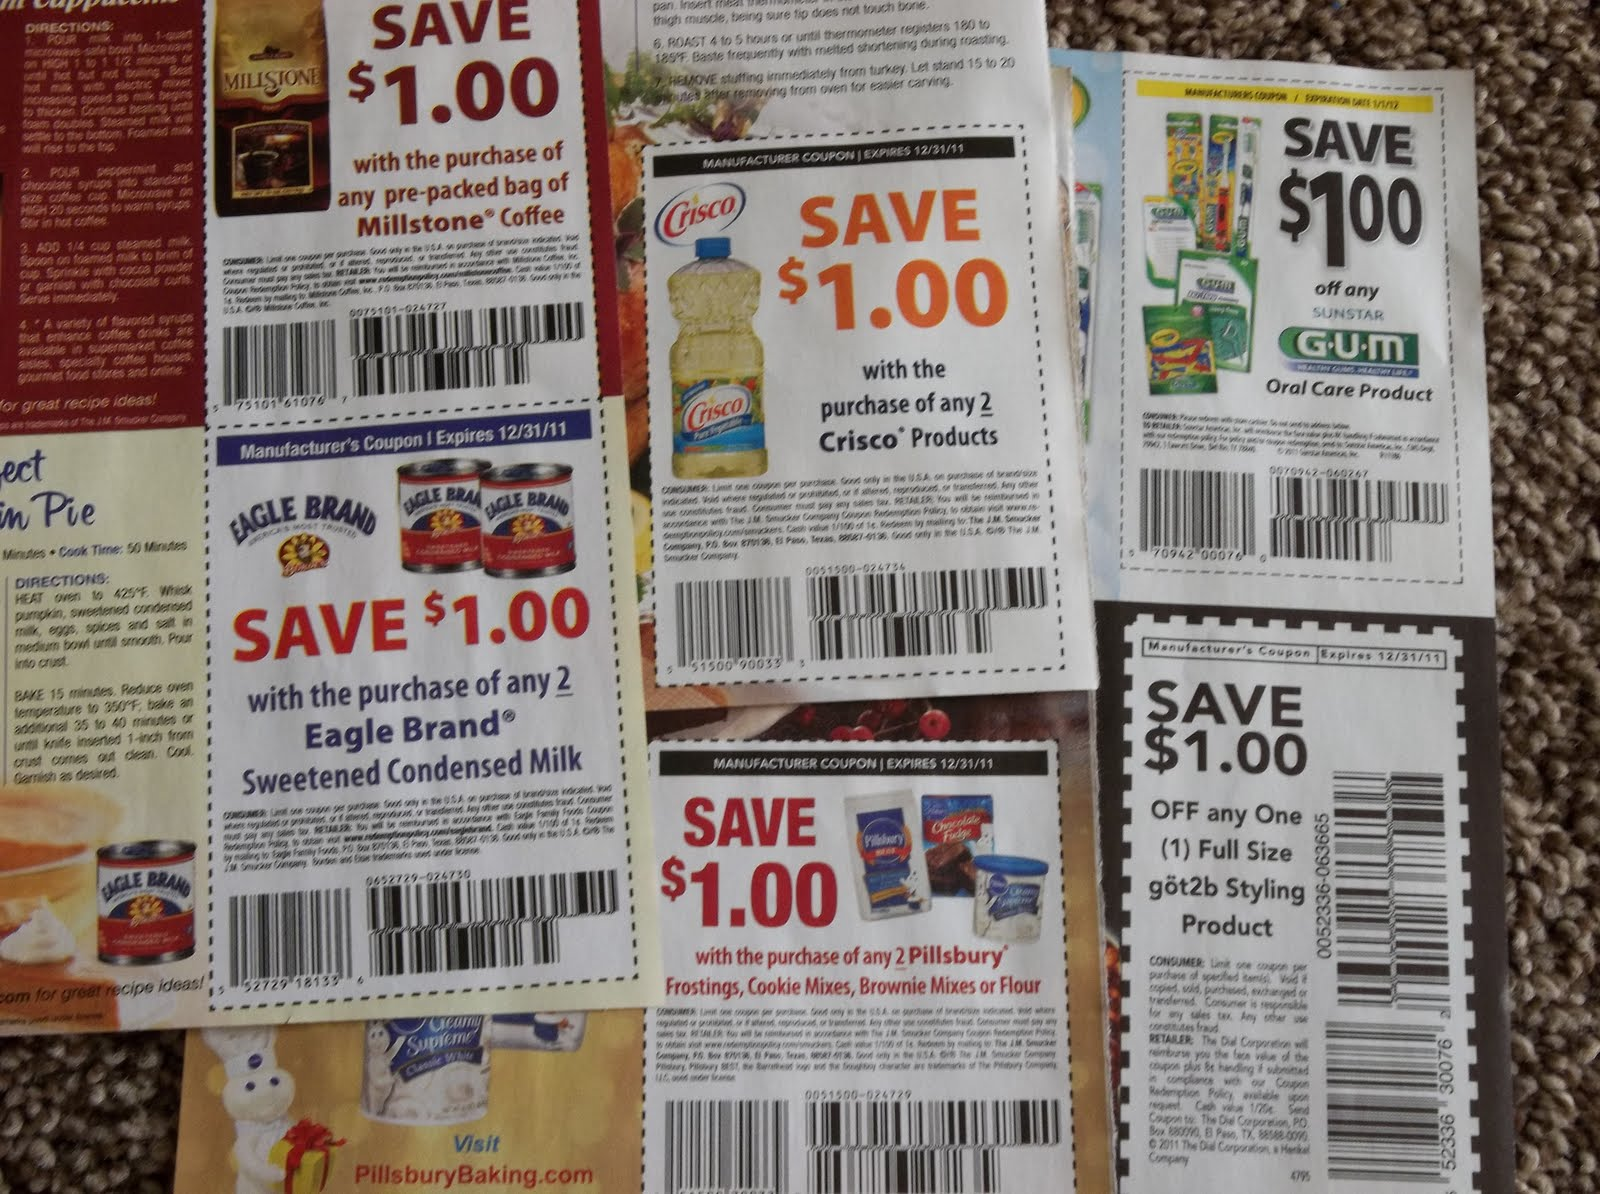 Land of make believe coupons